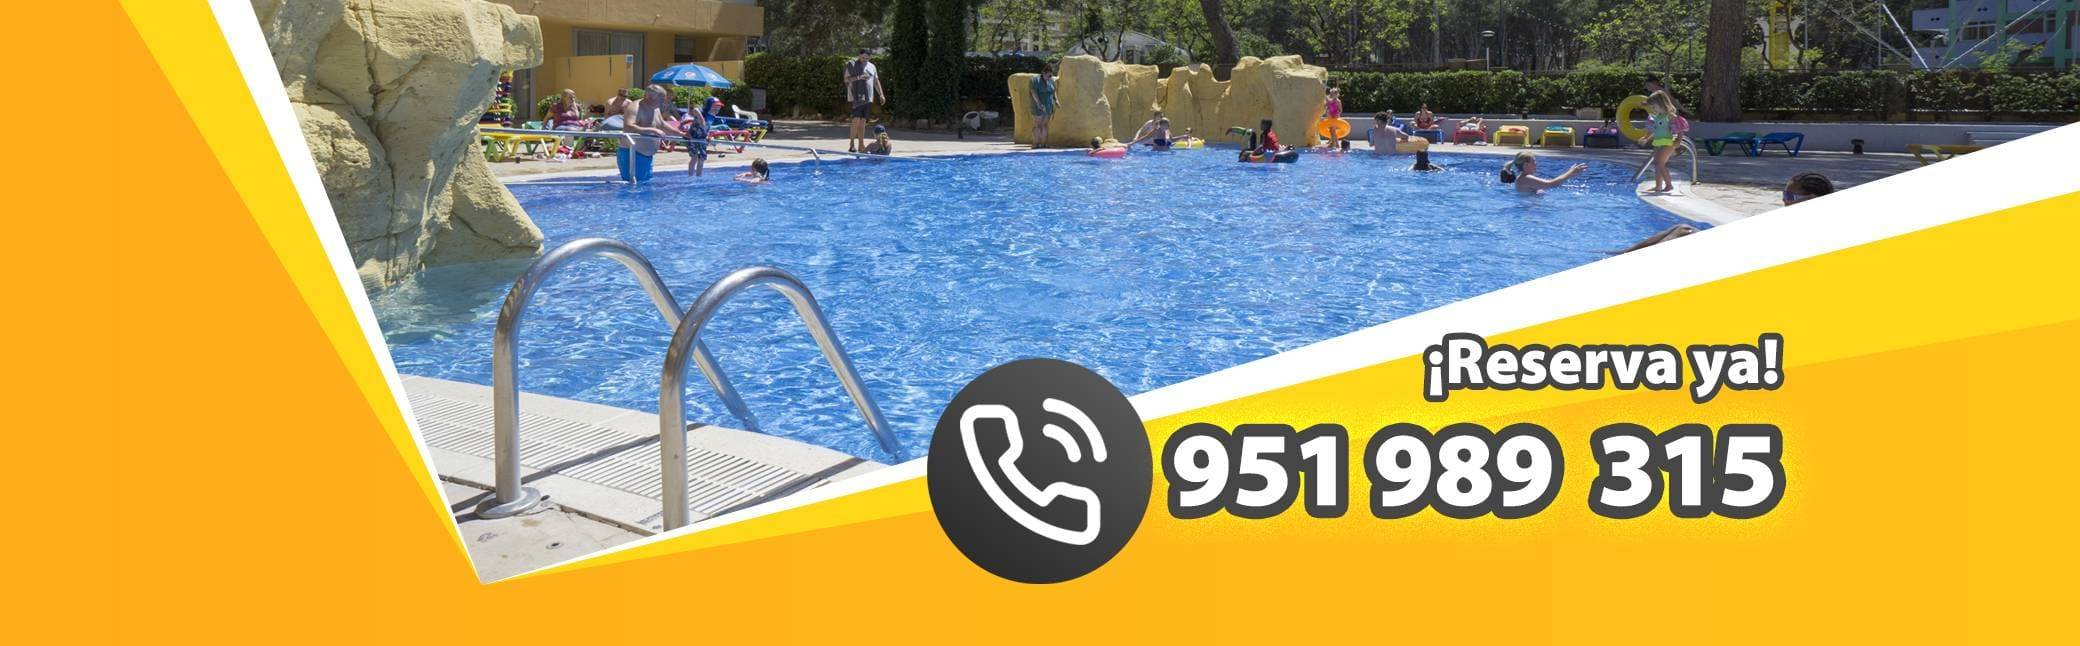 Hotel Calypso Salou Offer - Available Exclusively by calling our Call Centre